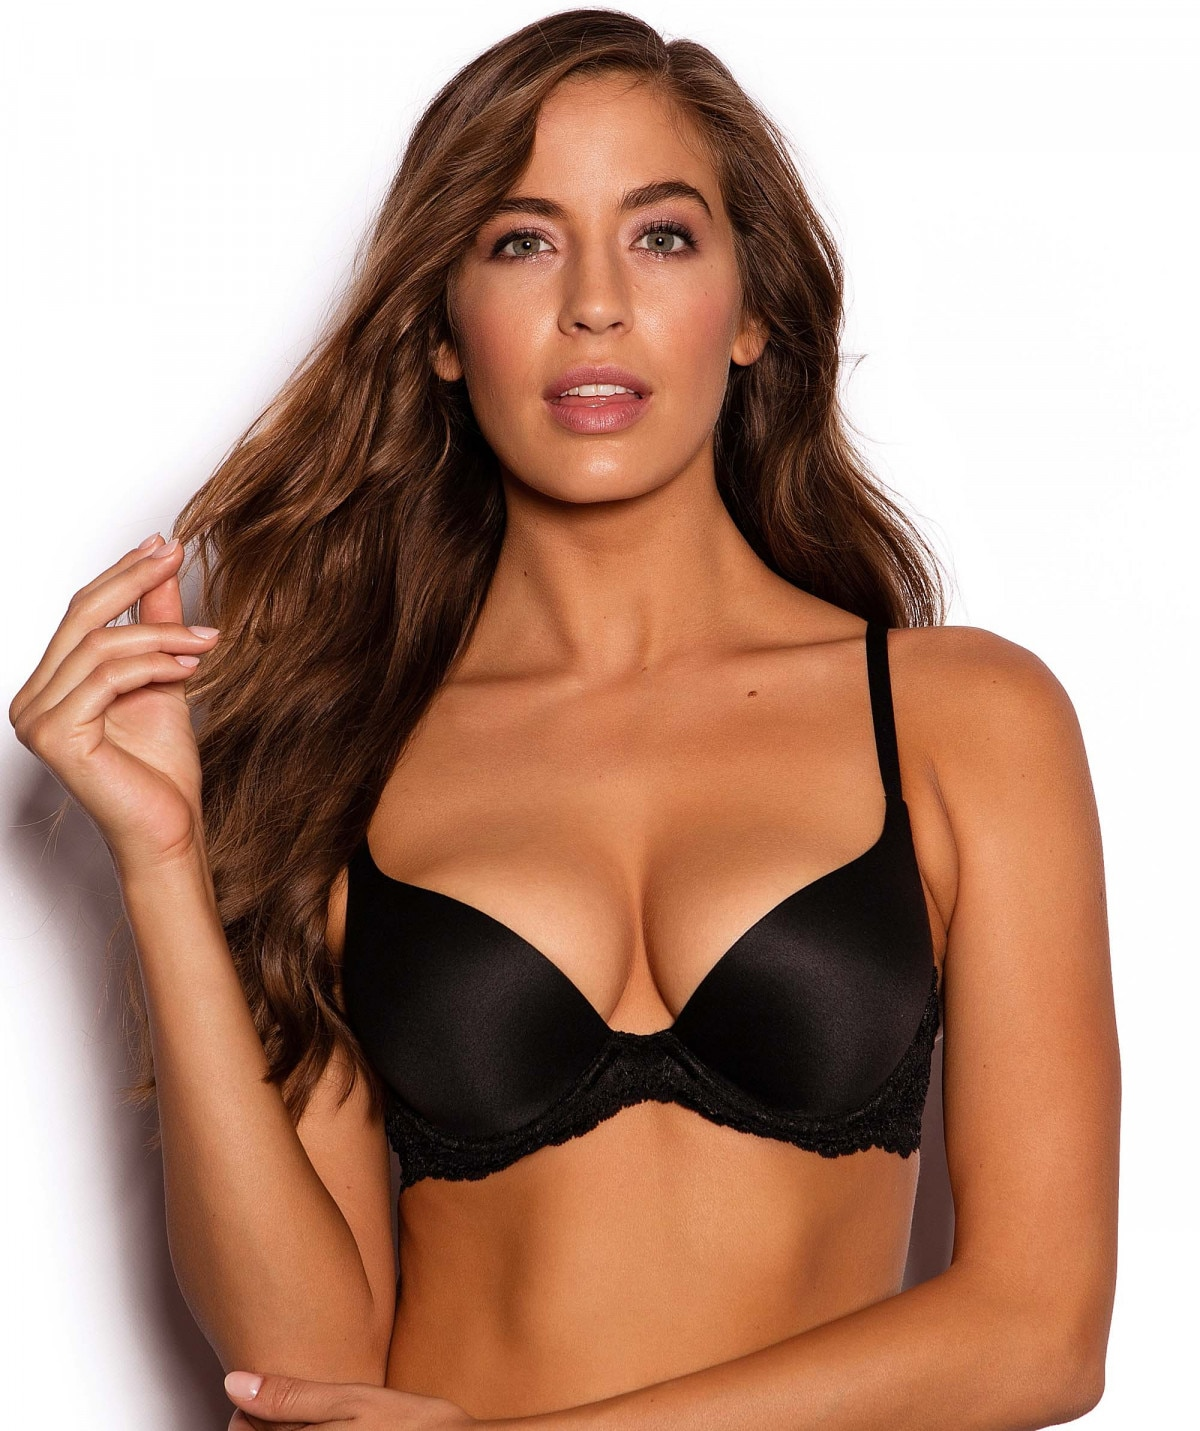 8a9994feb2c6e Body Bliss Lace Double Push Up Bra - Black.  54.99.  54.99